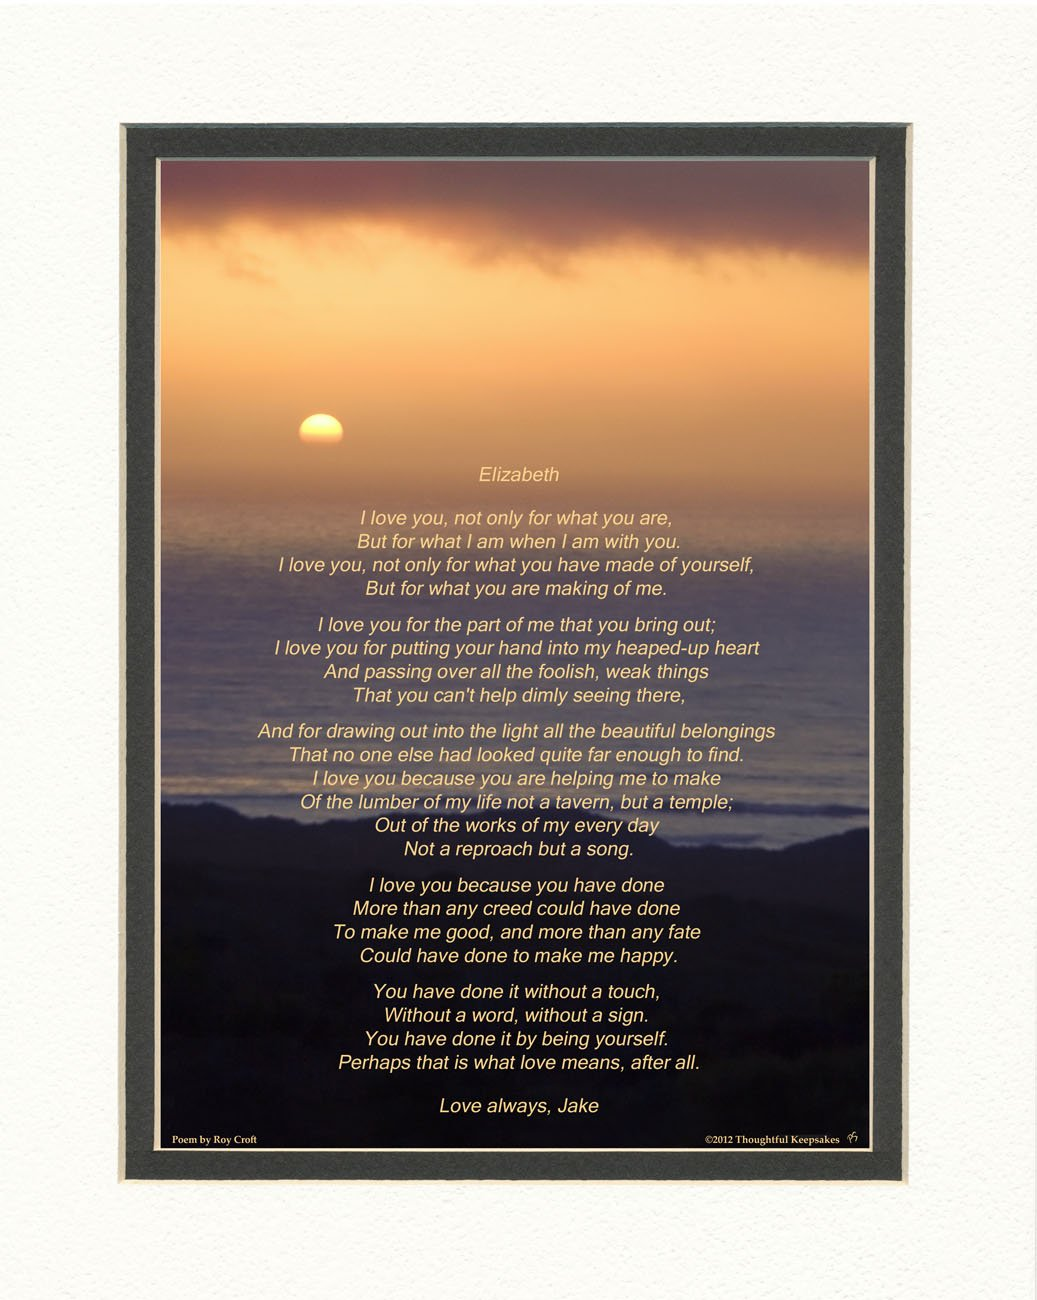 Personalized Gift for Husband, Wife, Boyfriend or Girlfriend. Ocean Sunset Photo with ''I Love You'' Poem by Roy Croft, 8x10 Double Matted. Special Anniversary Gift, Valentines Day, Birthday, Christmas